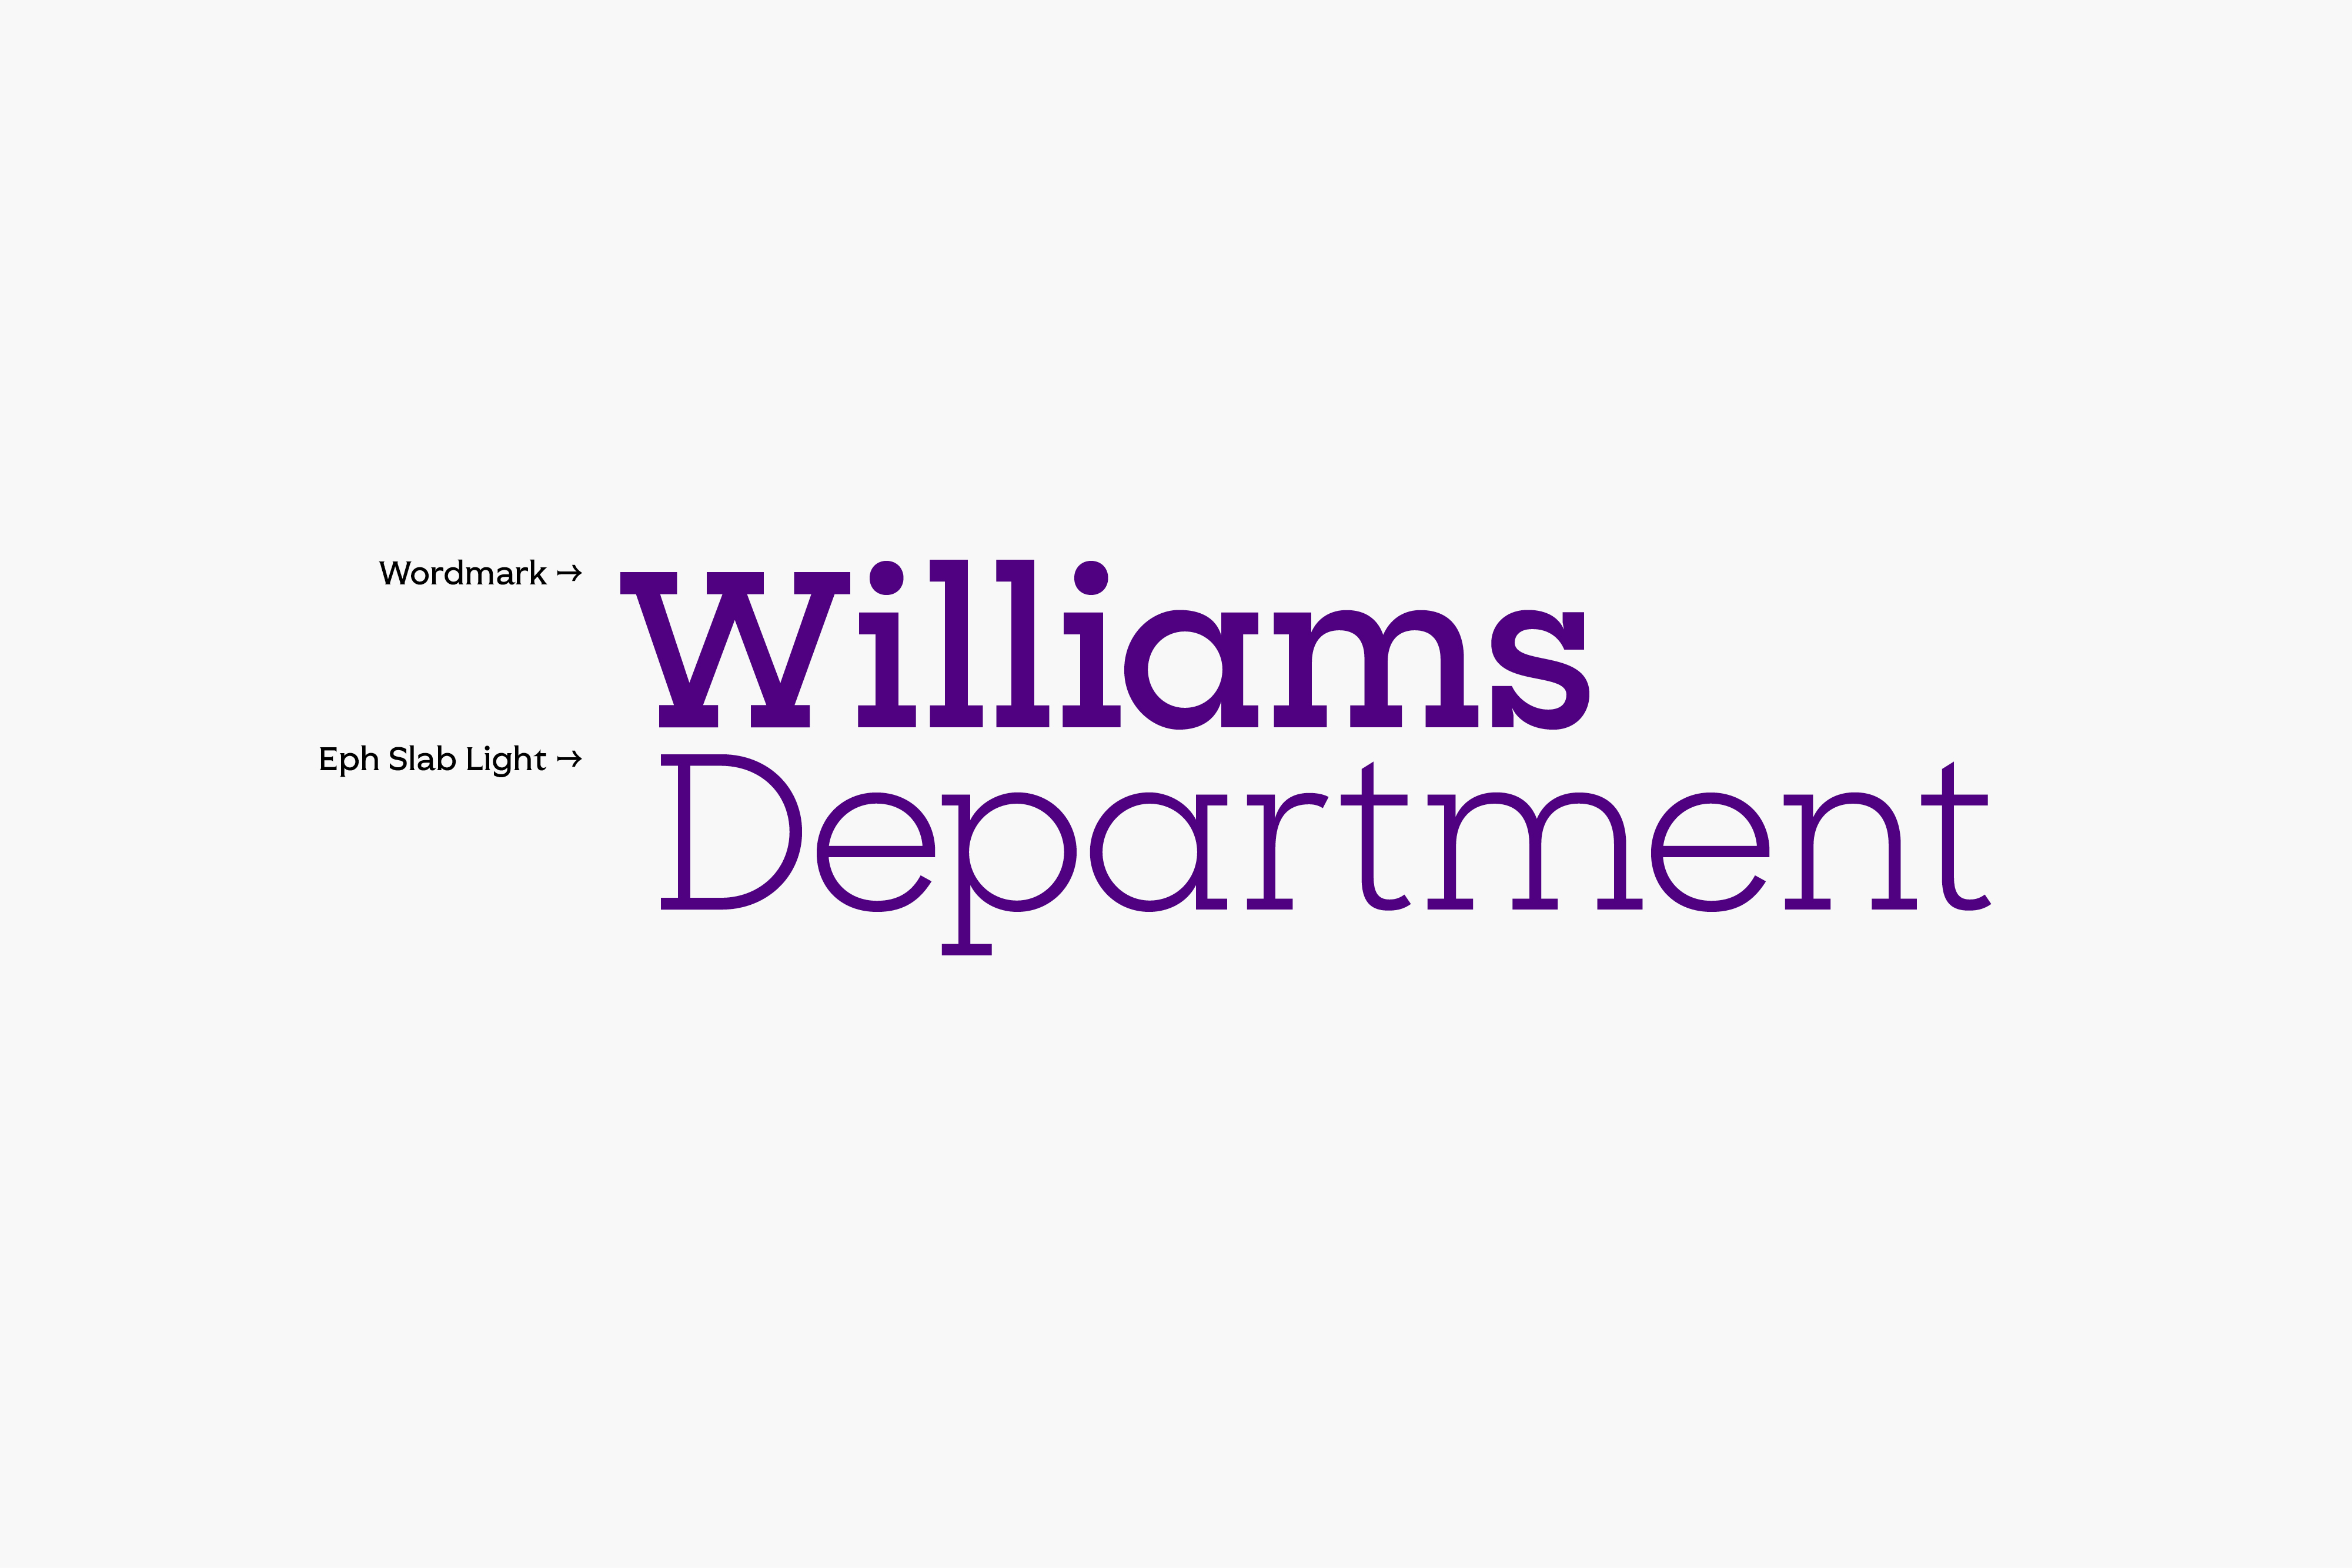 williams_guidelines_rectangle_1280px_arch7